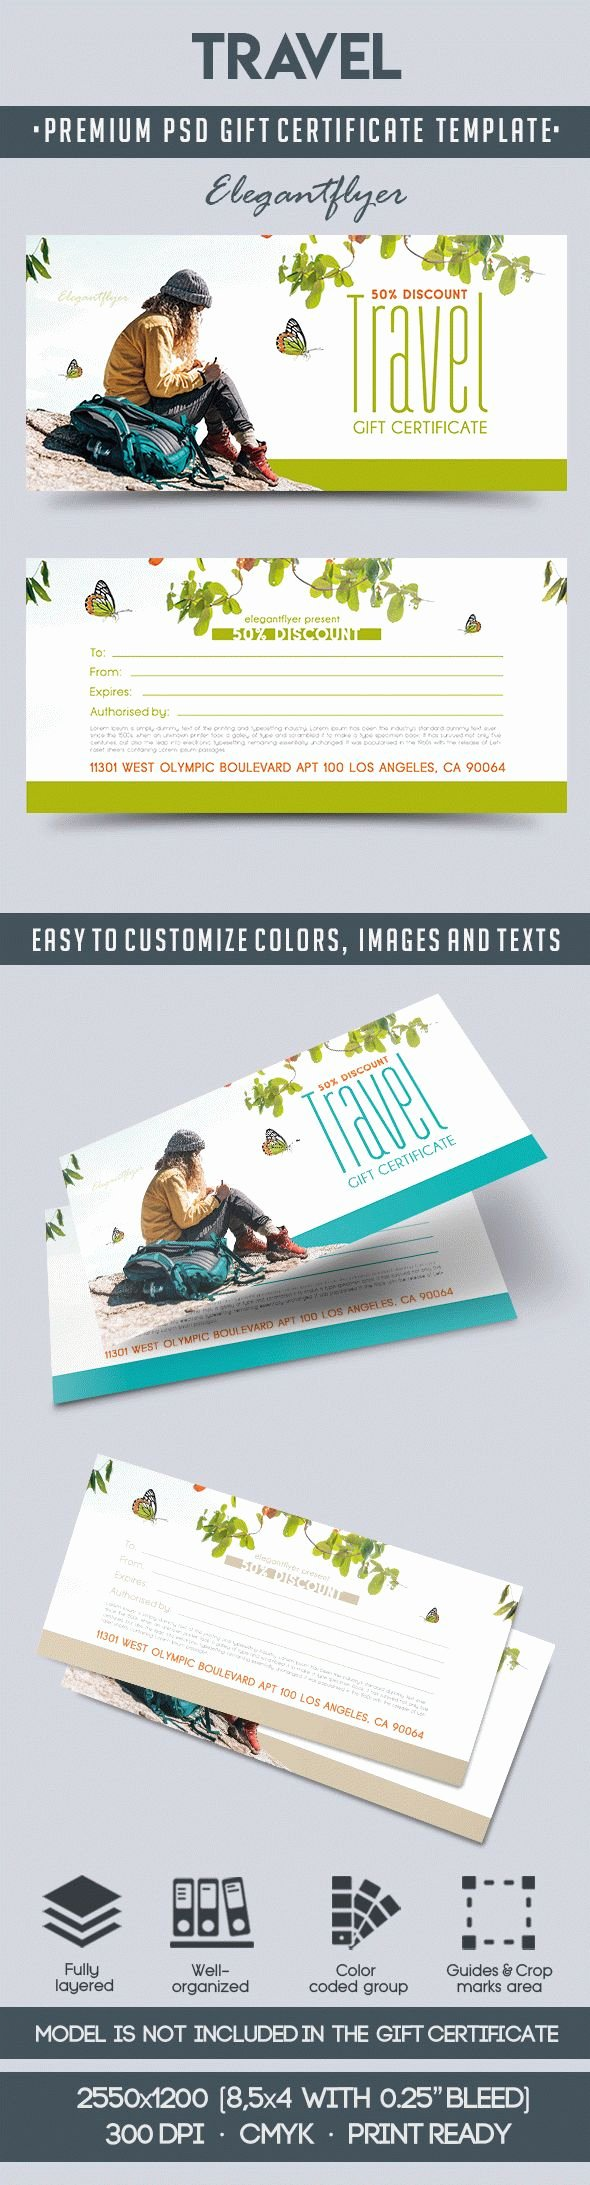 Vacation Gift Certificate Template Elegant Travel Gift Voucher Template In Psd – by Elegantflyer